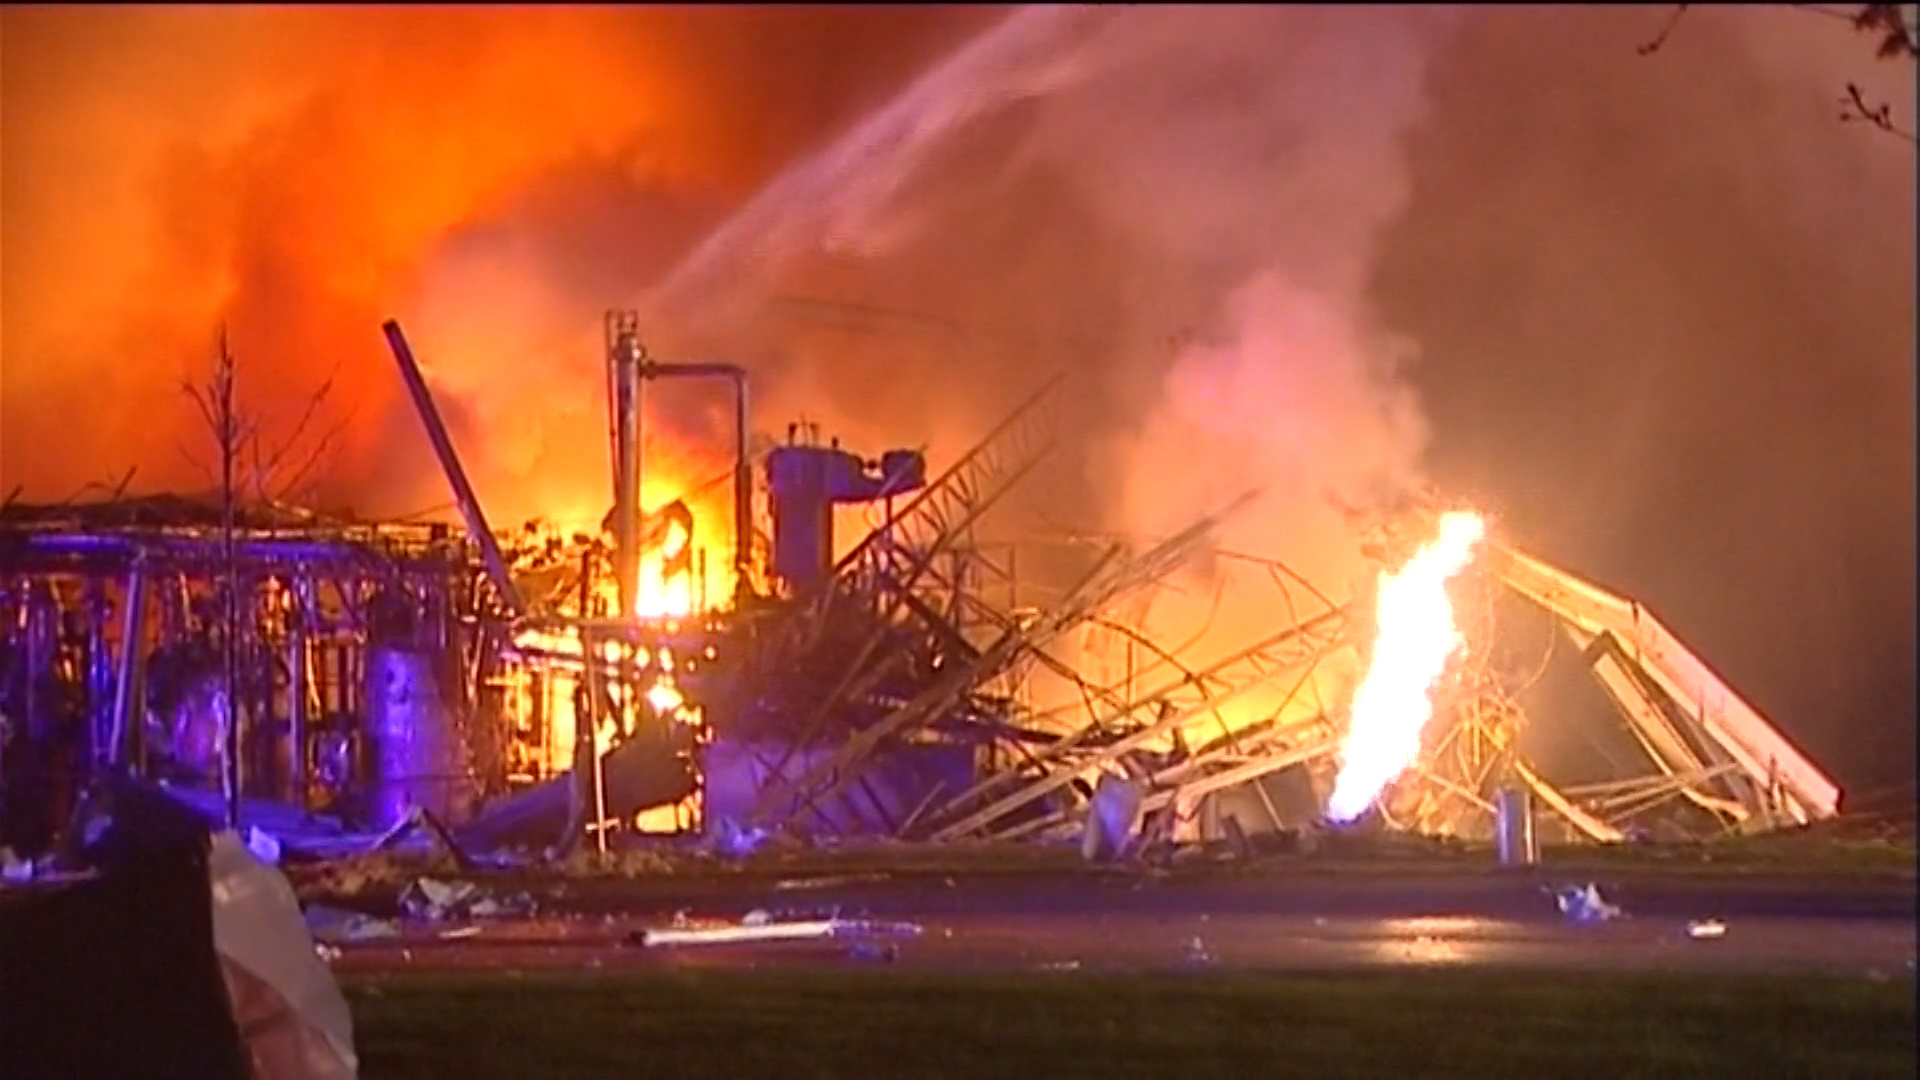 3 believed dead in explosion at Illinois plant